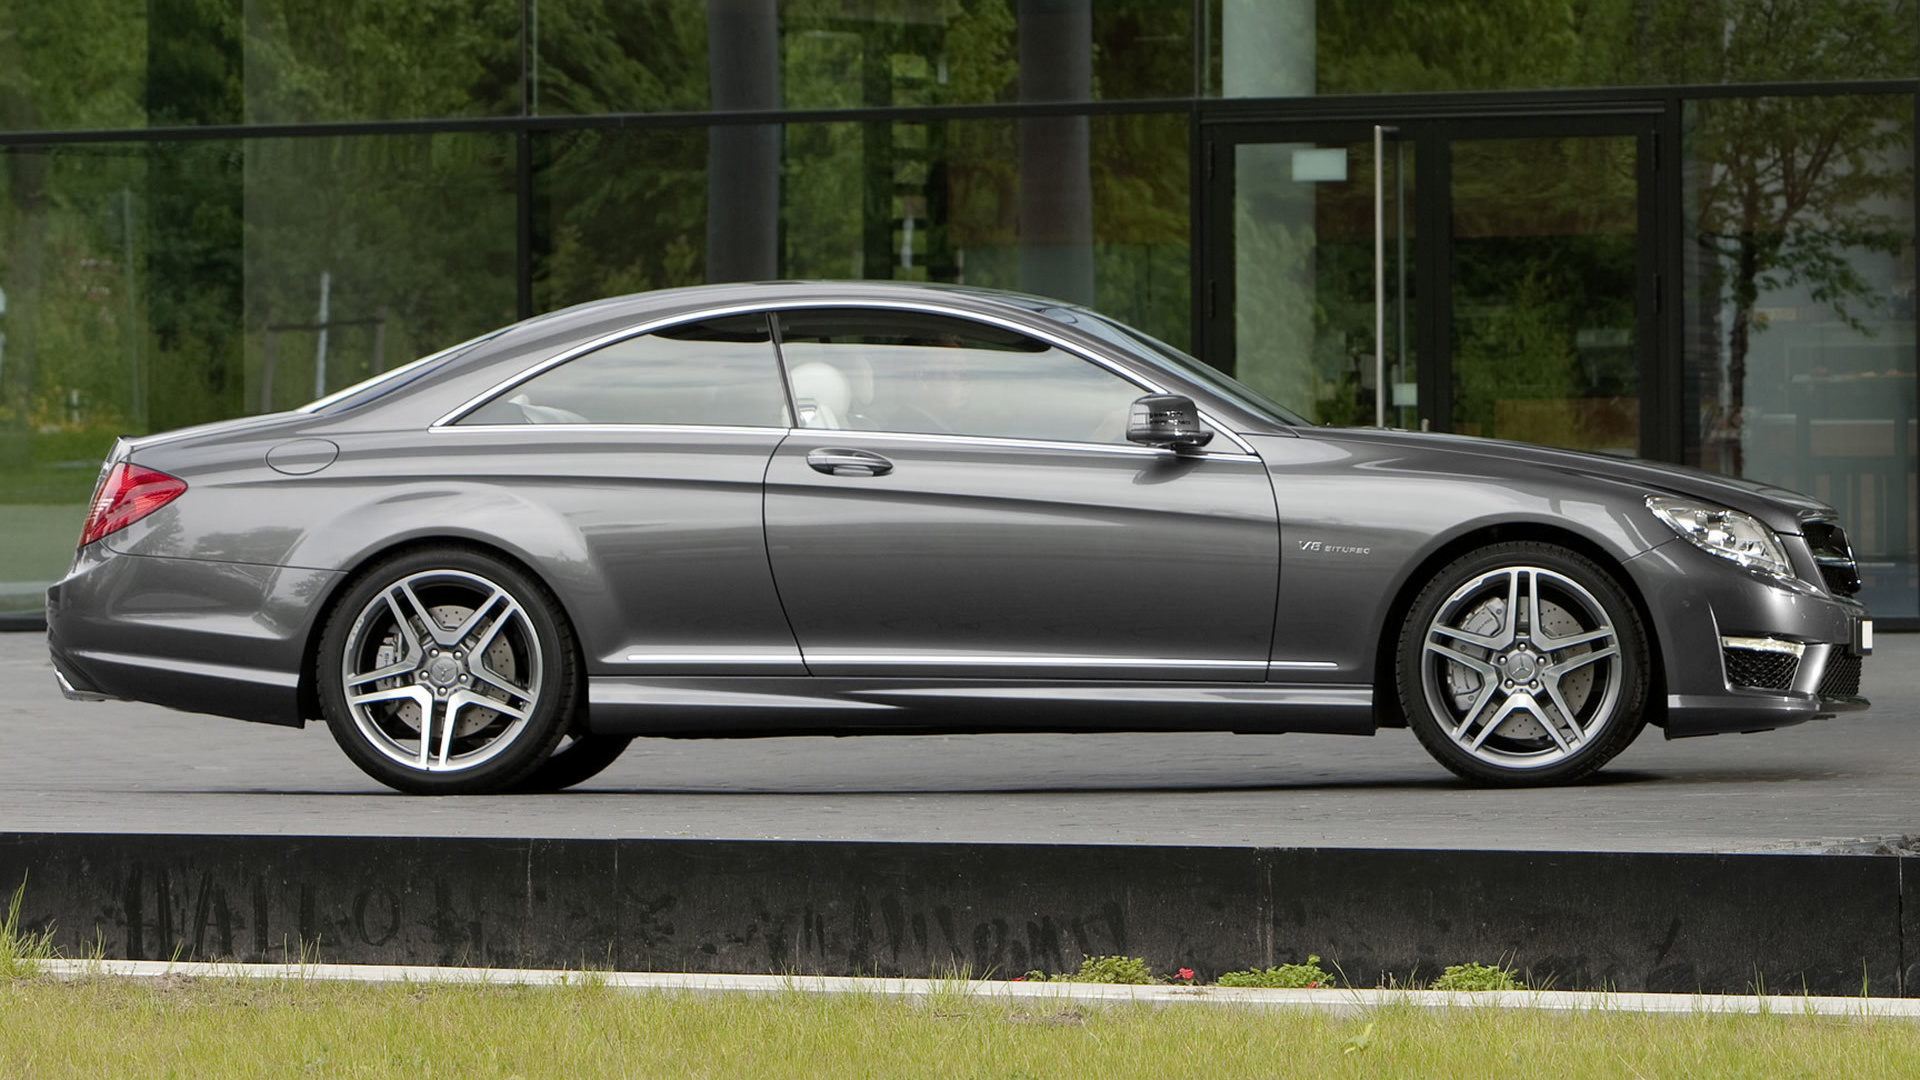 2010 mercedes benz cl 63 amg wallpapers and hd images. Black Bedroom Furniture Sets. Home Design Ideas